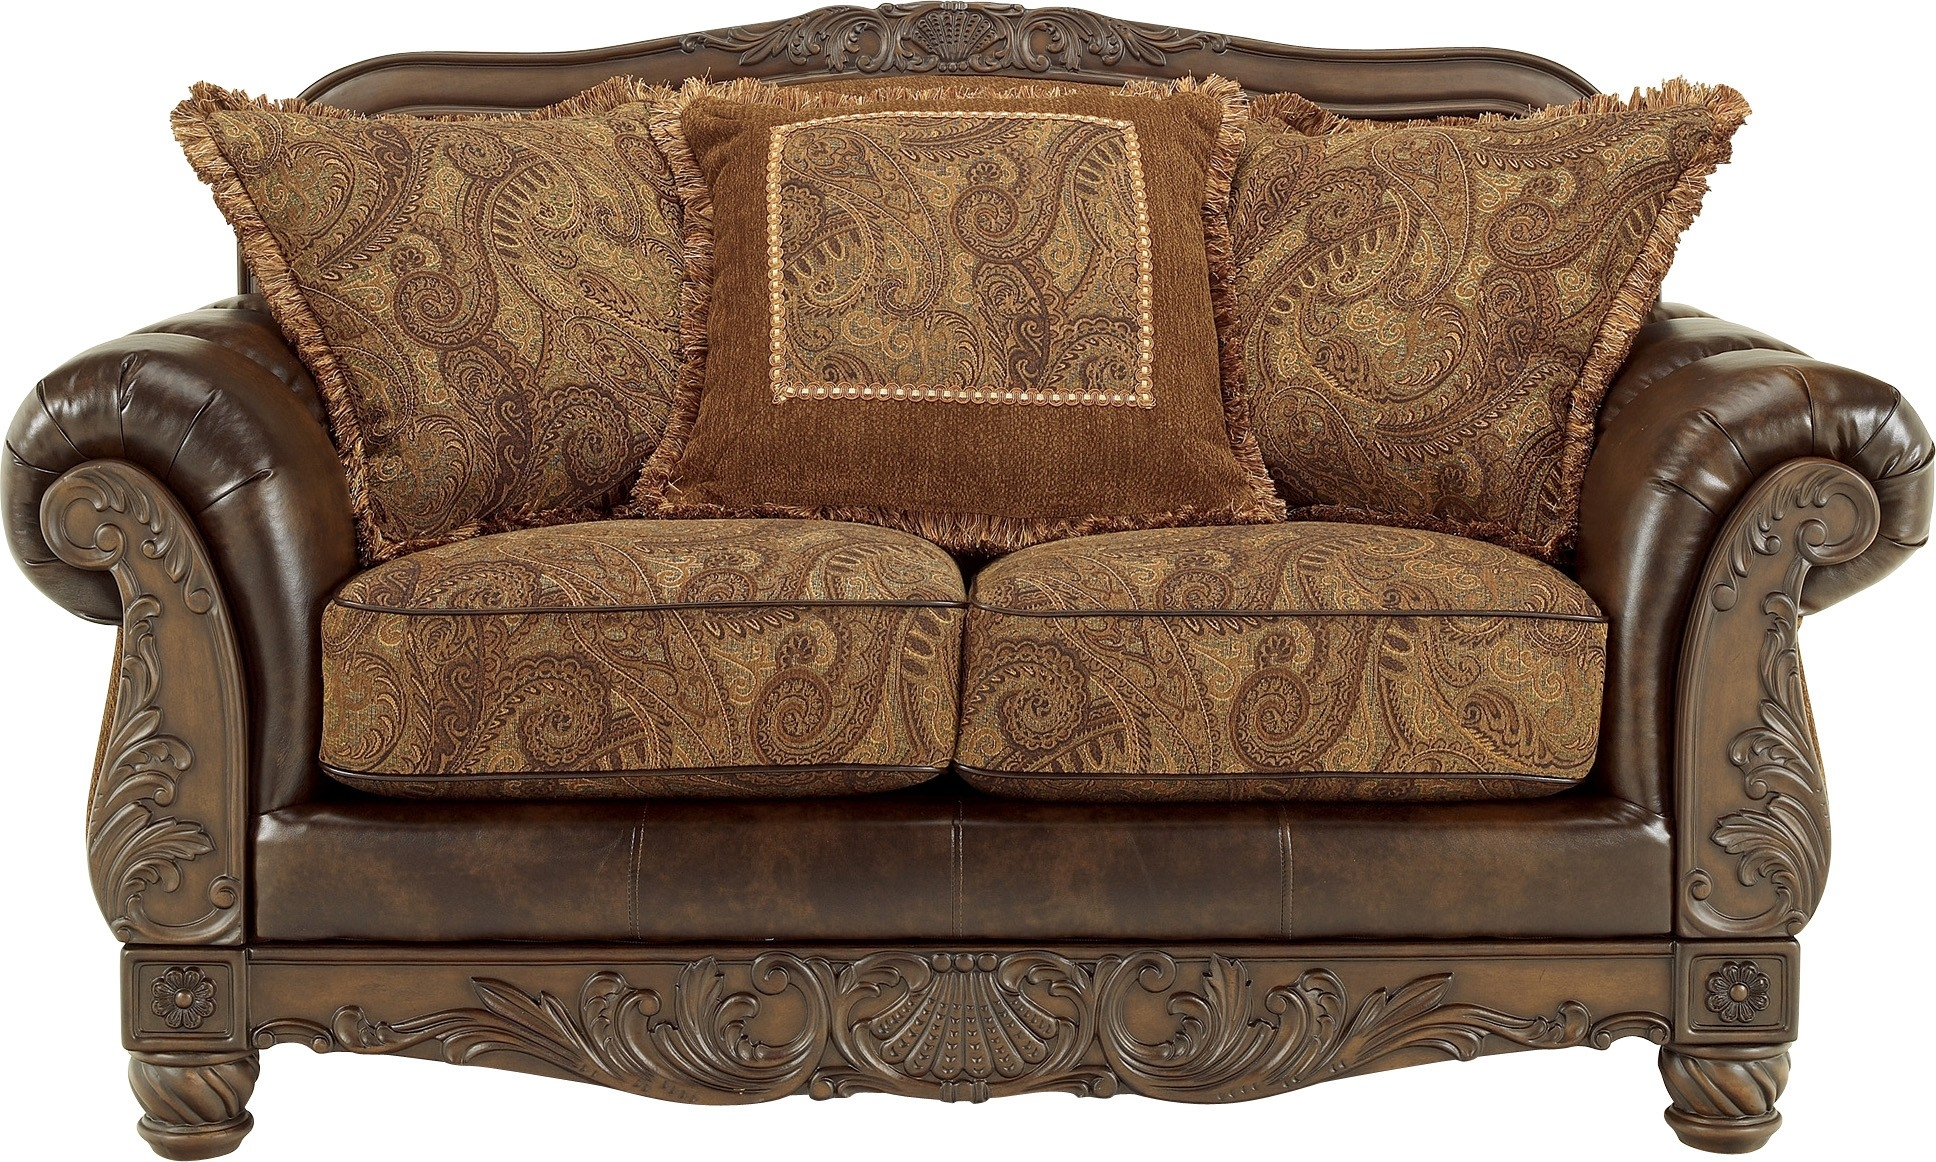 Fresco Durablend Antique Loveseat Ashley Furniture Pertaining To Antique Sofa Chairs (View 12 of 15)